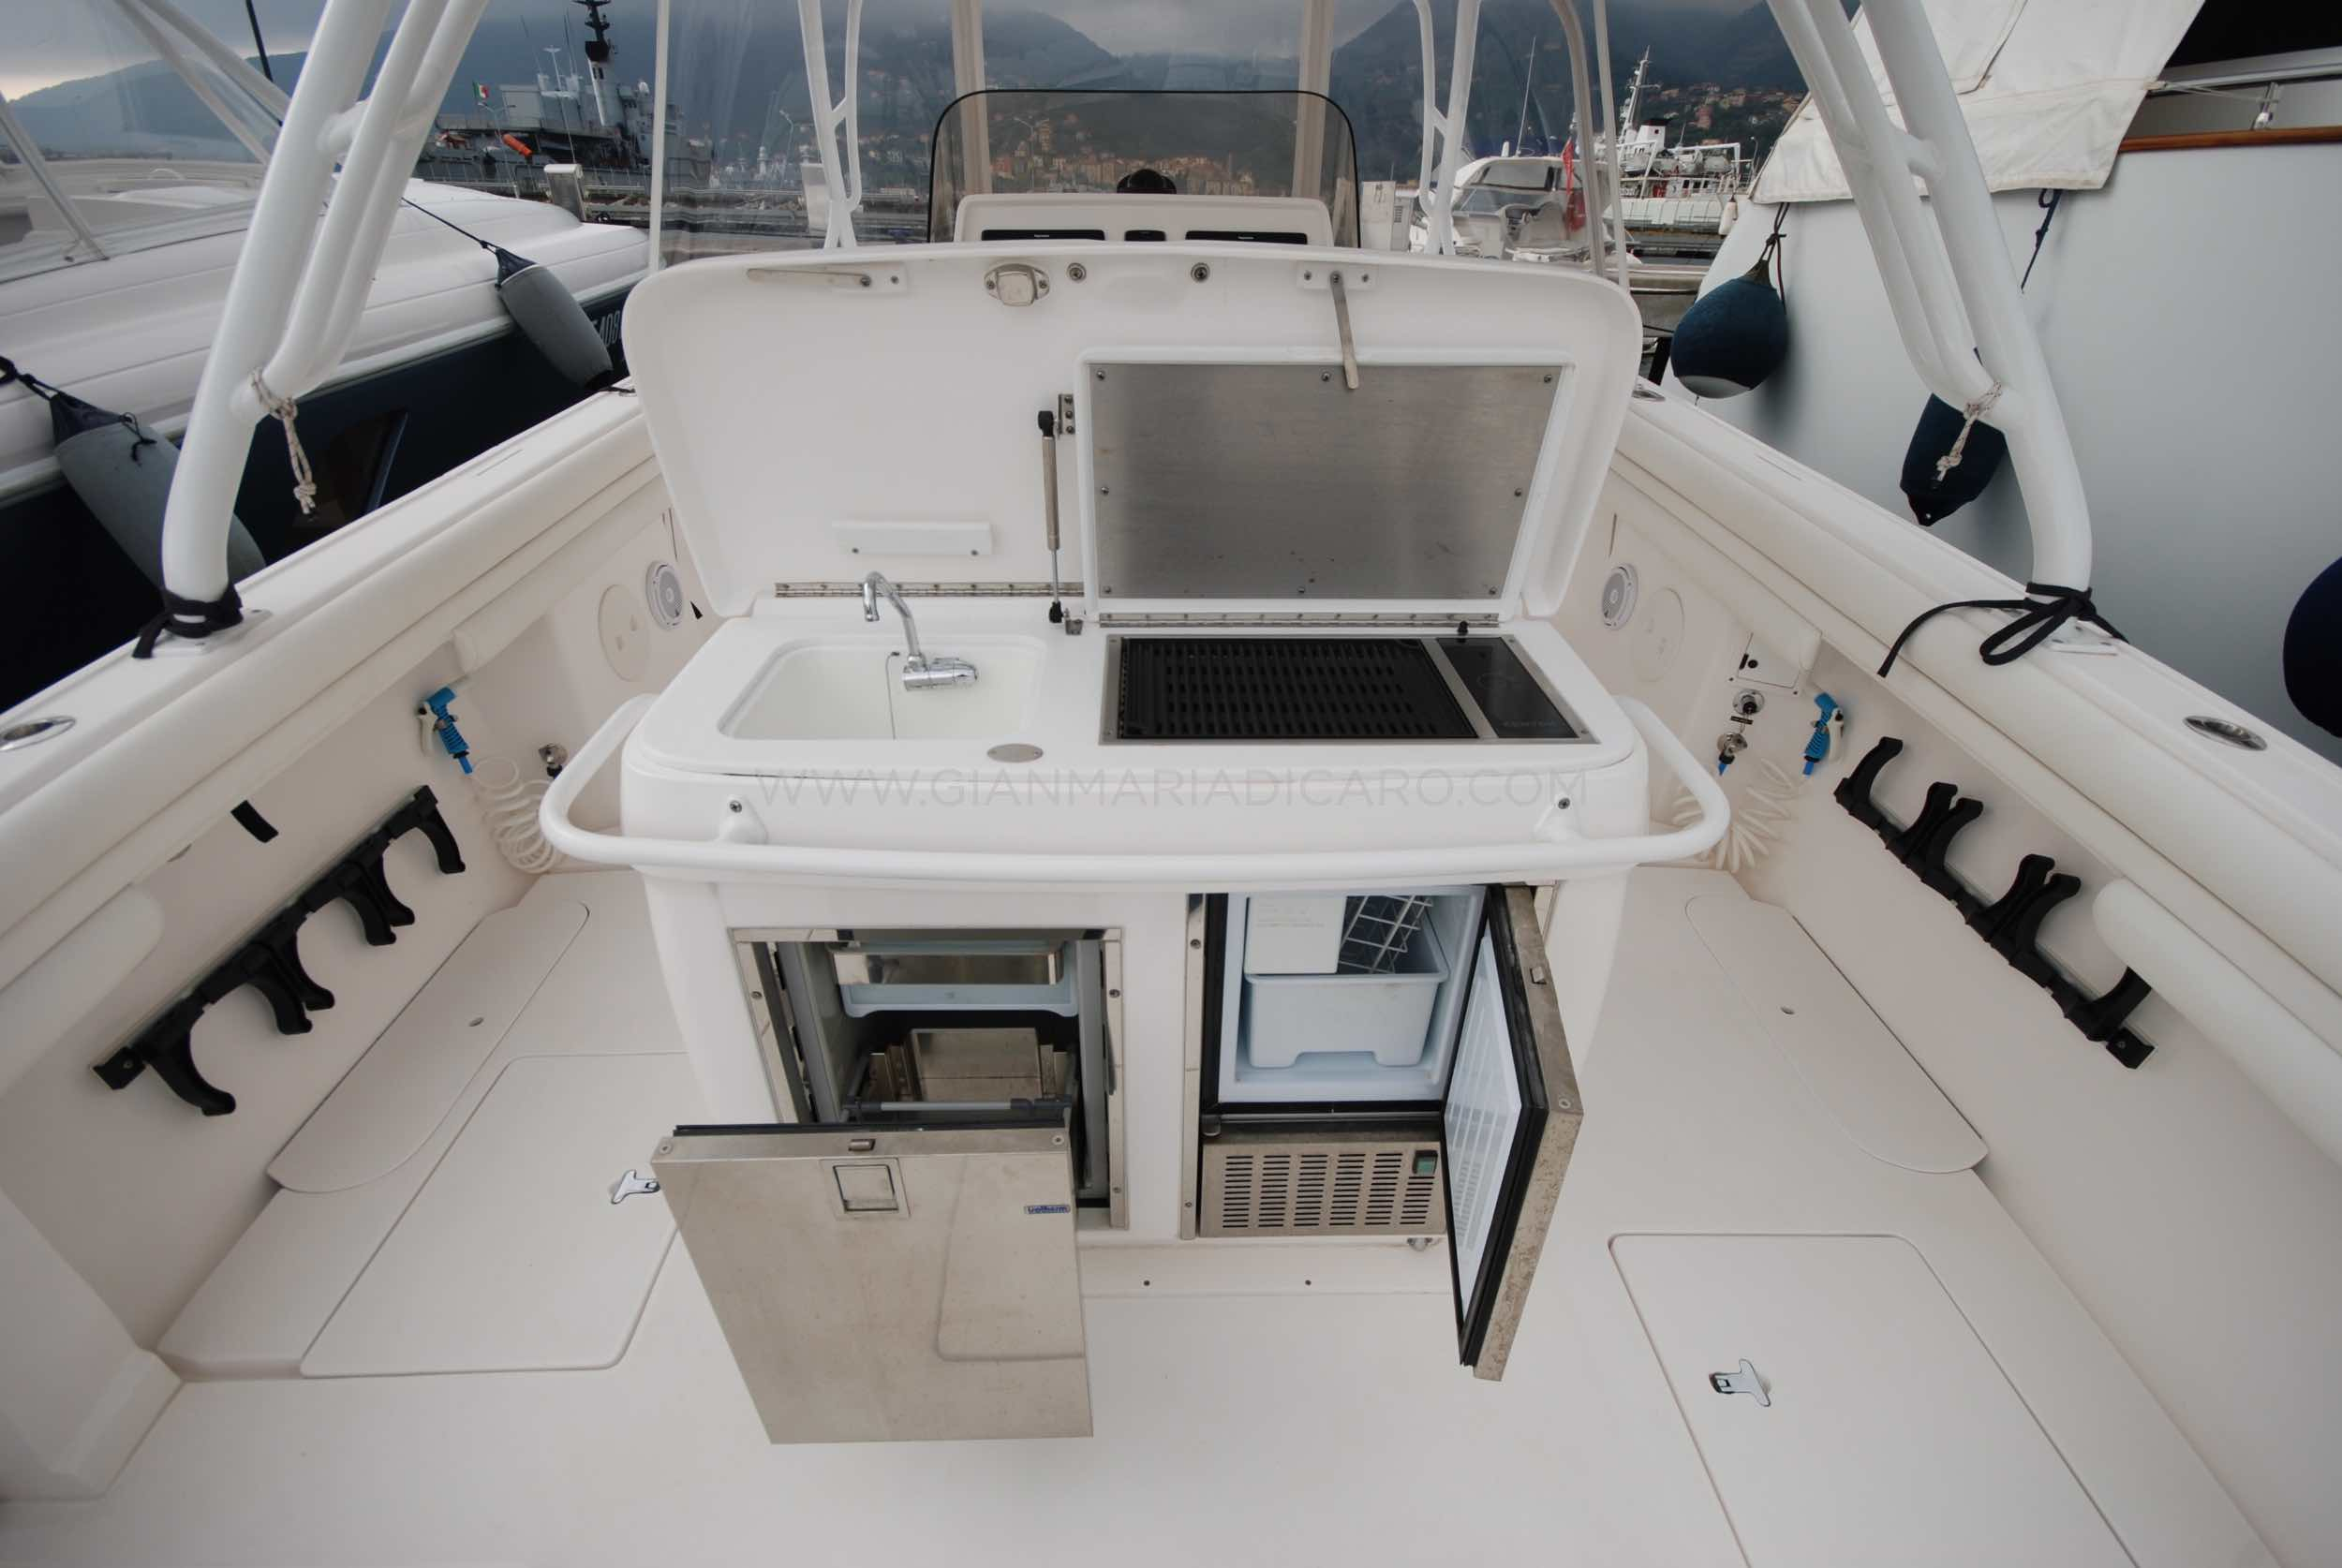 intrepid-400-centre-console-z-blonde-for-sale-8.jpg